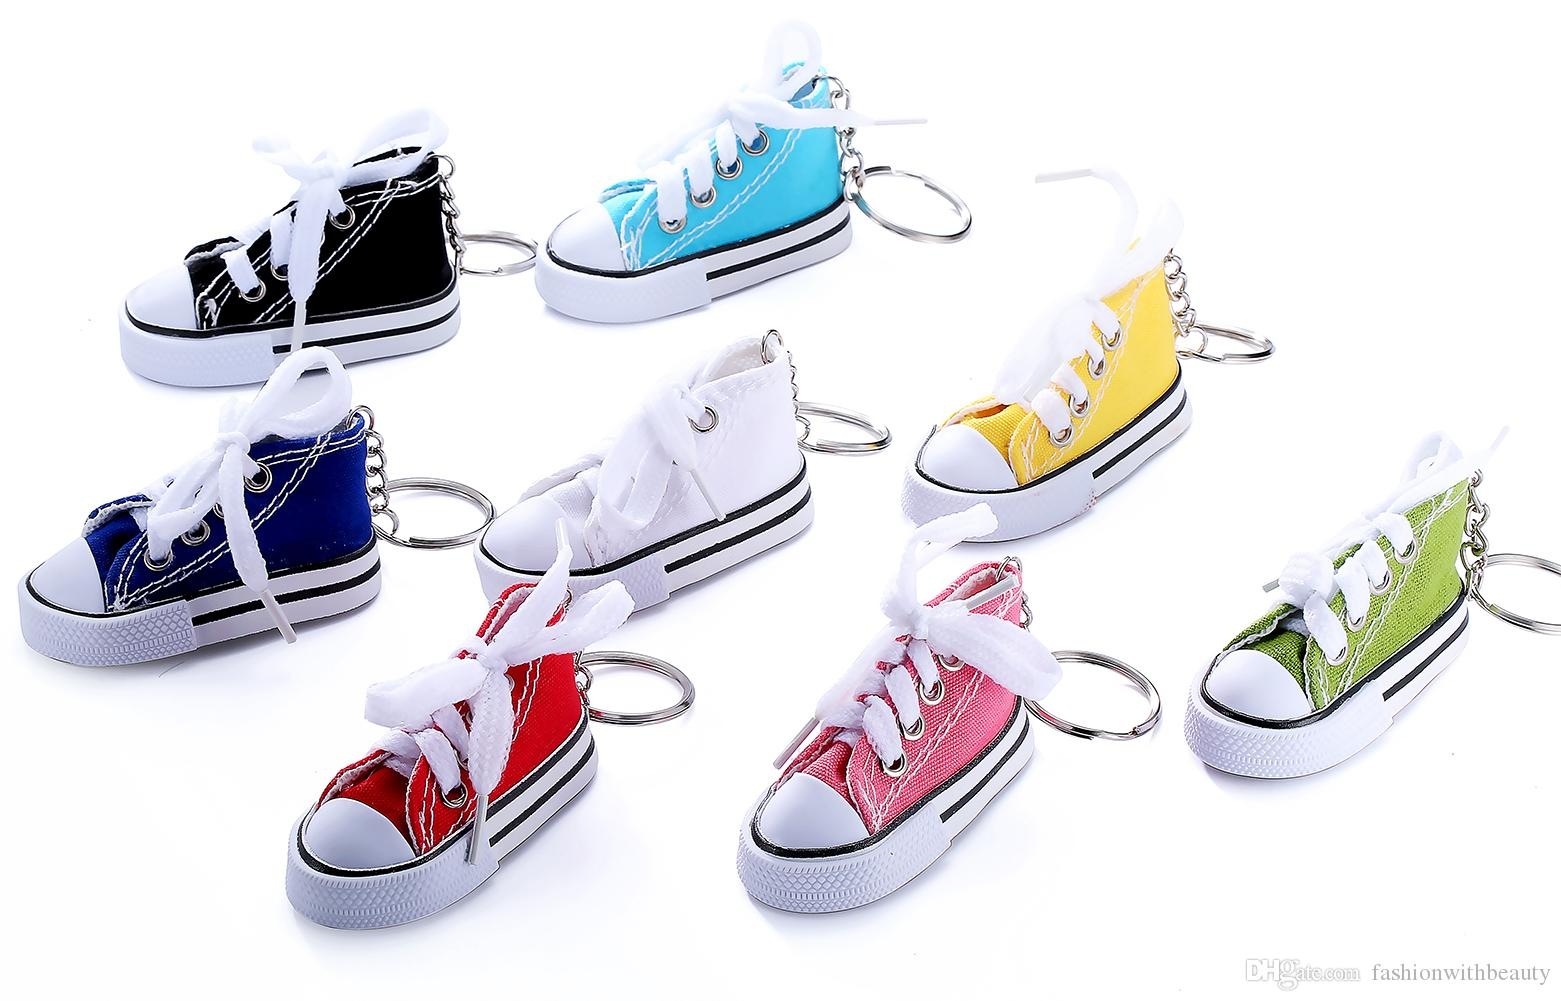 wholesale 8 colors 3D Novelty Canvas Sneaker Tennis Shoe Keychain Key Chain Party Jewelry